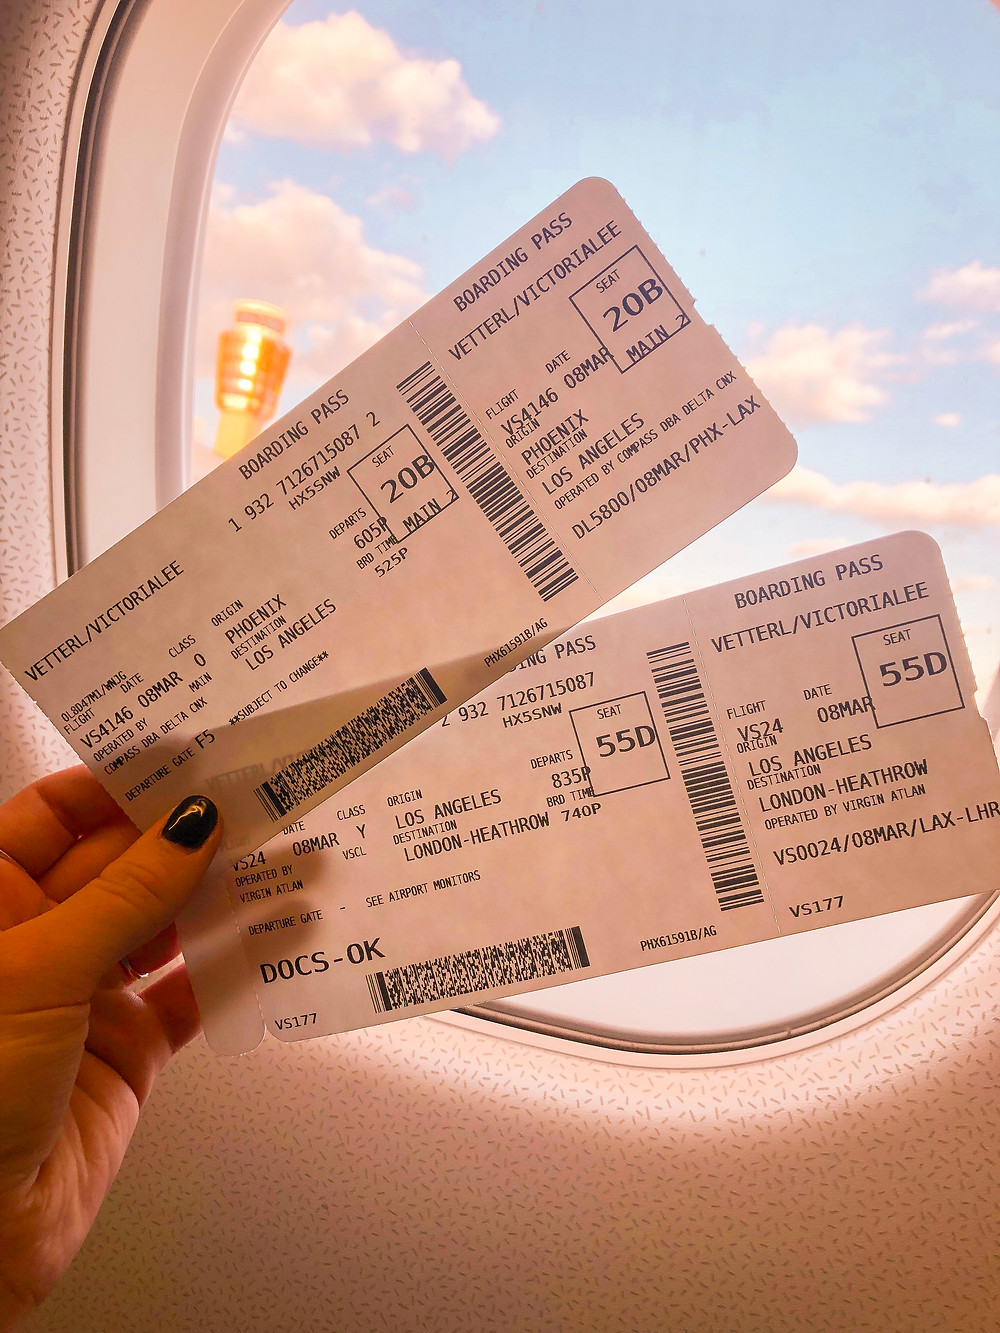 plane tickets in front of a window